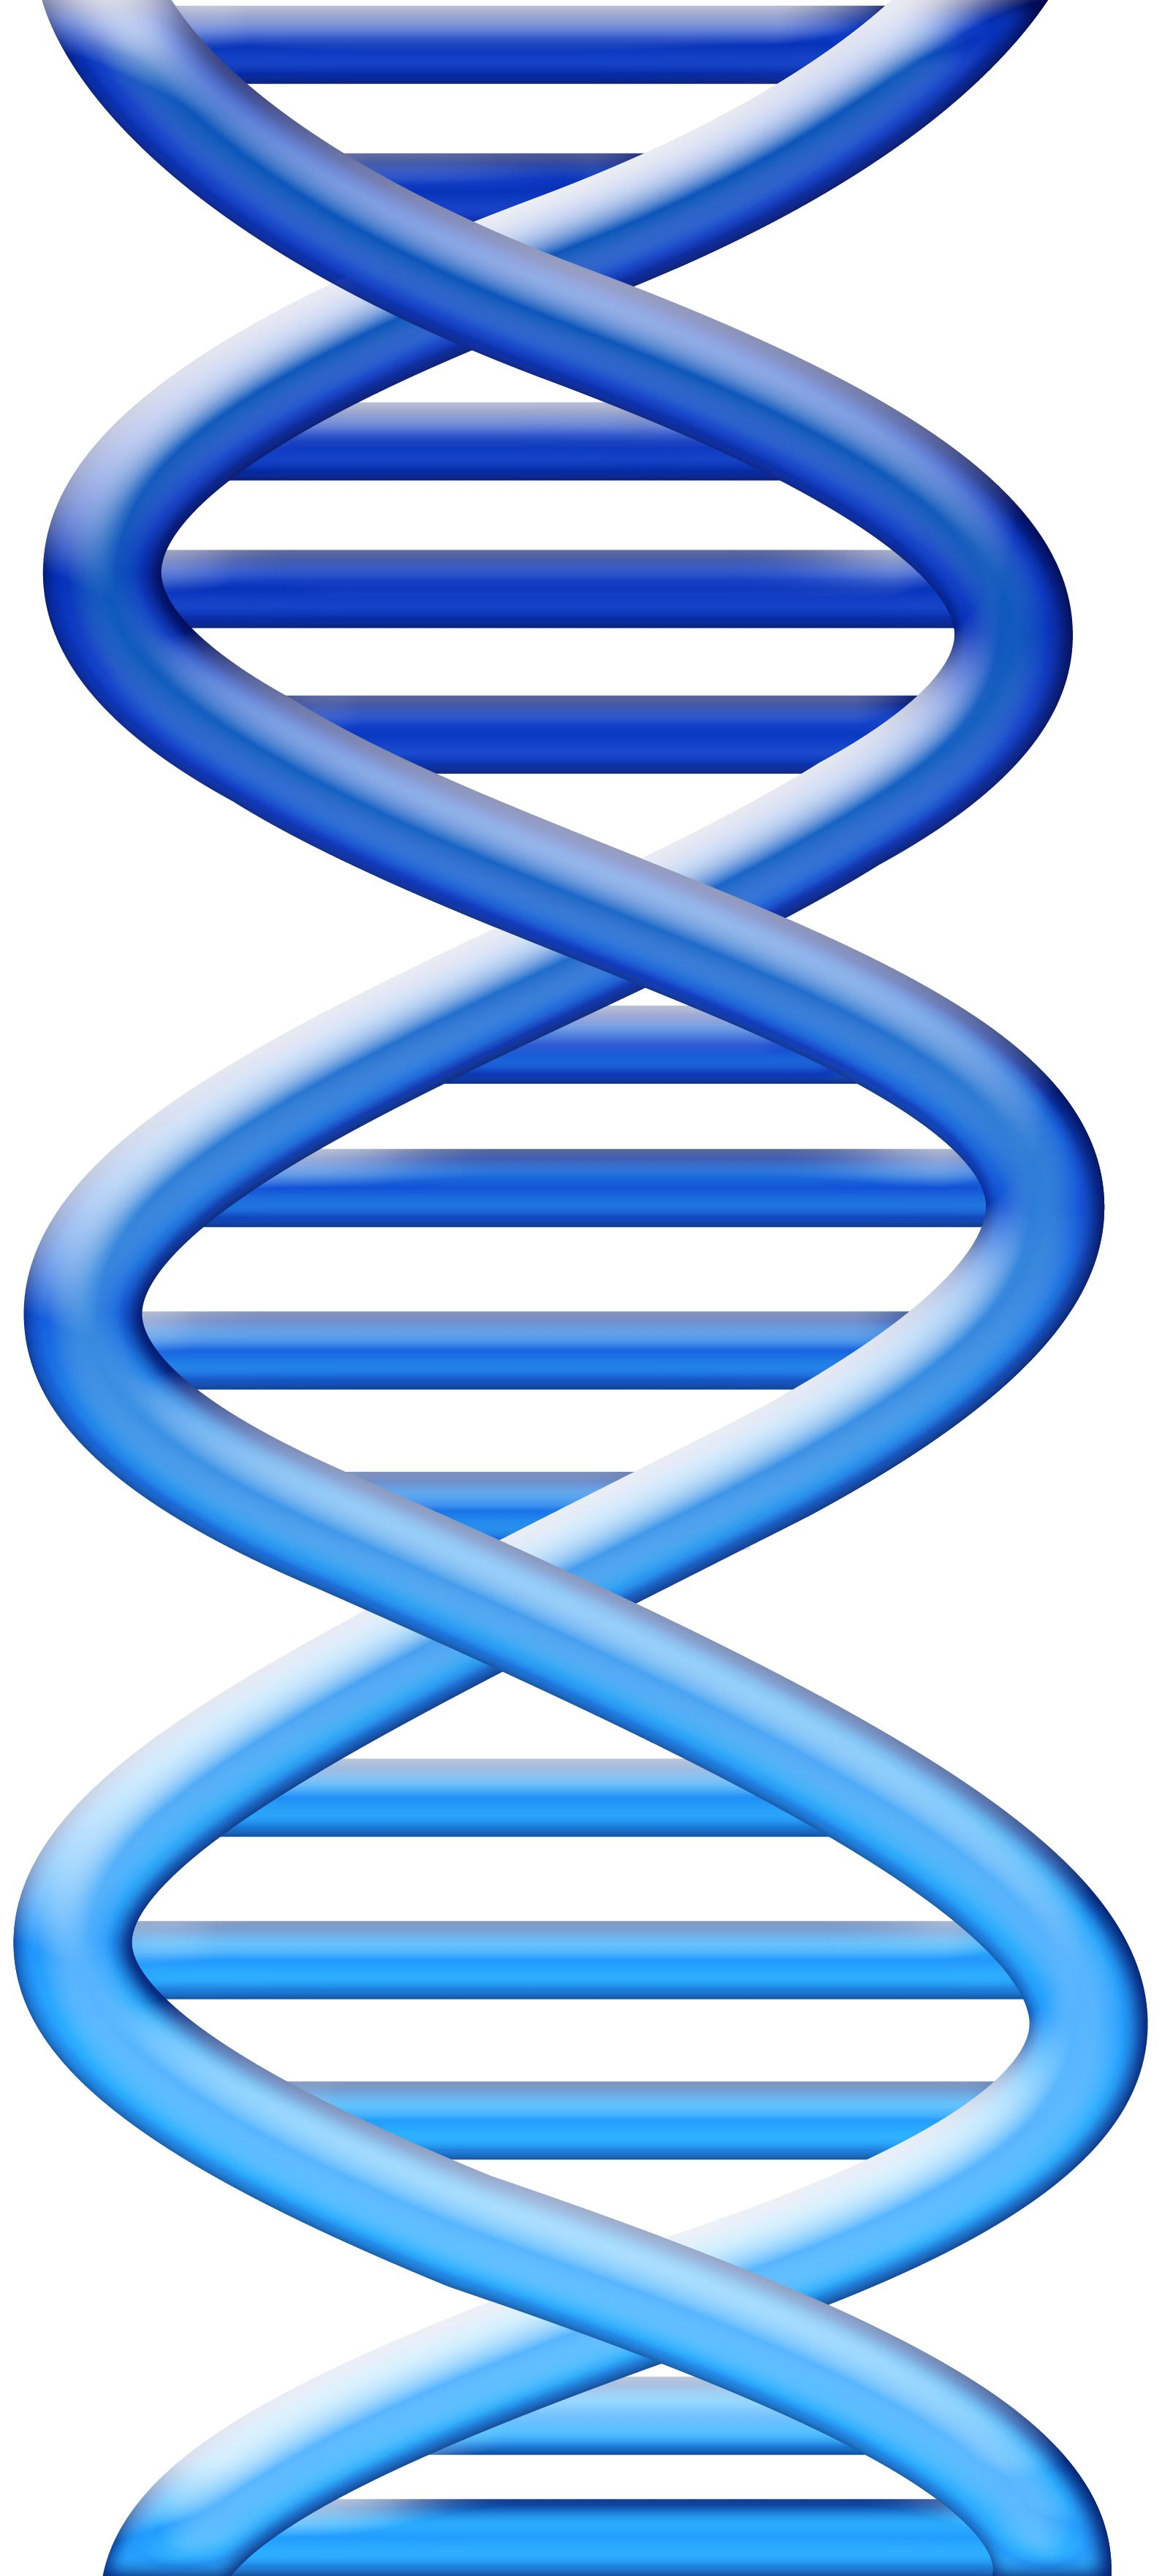 Dna clipart blue. Helix backgrounds hd top